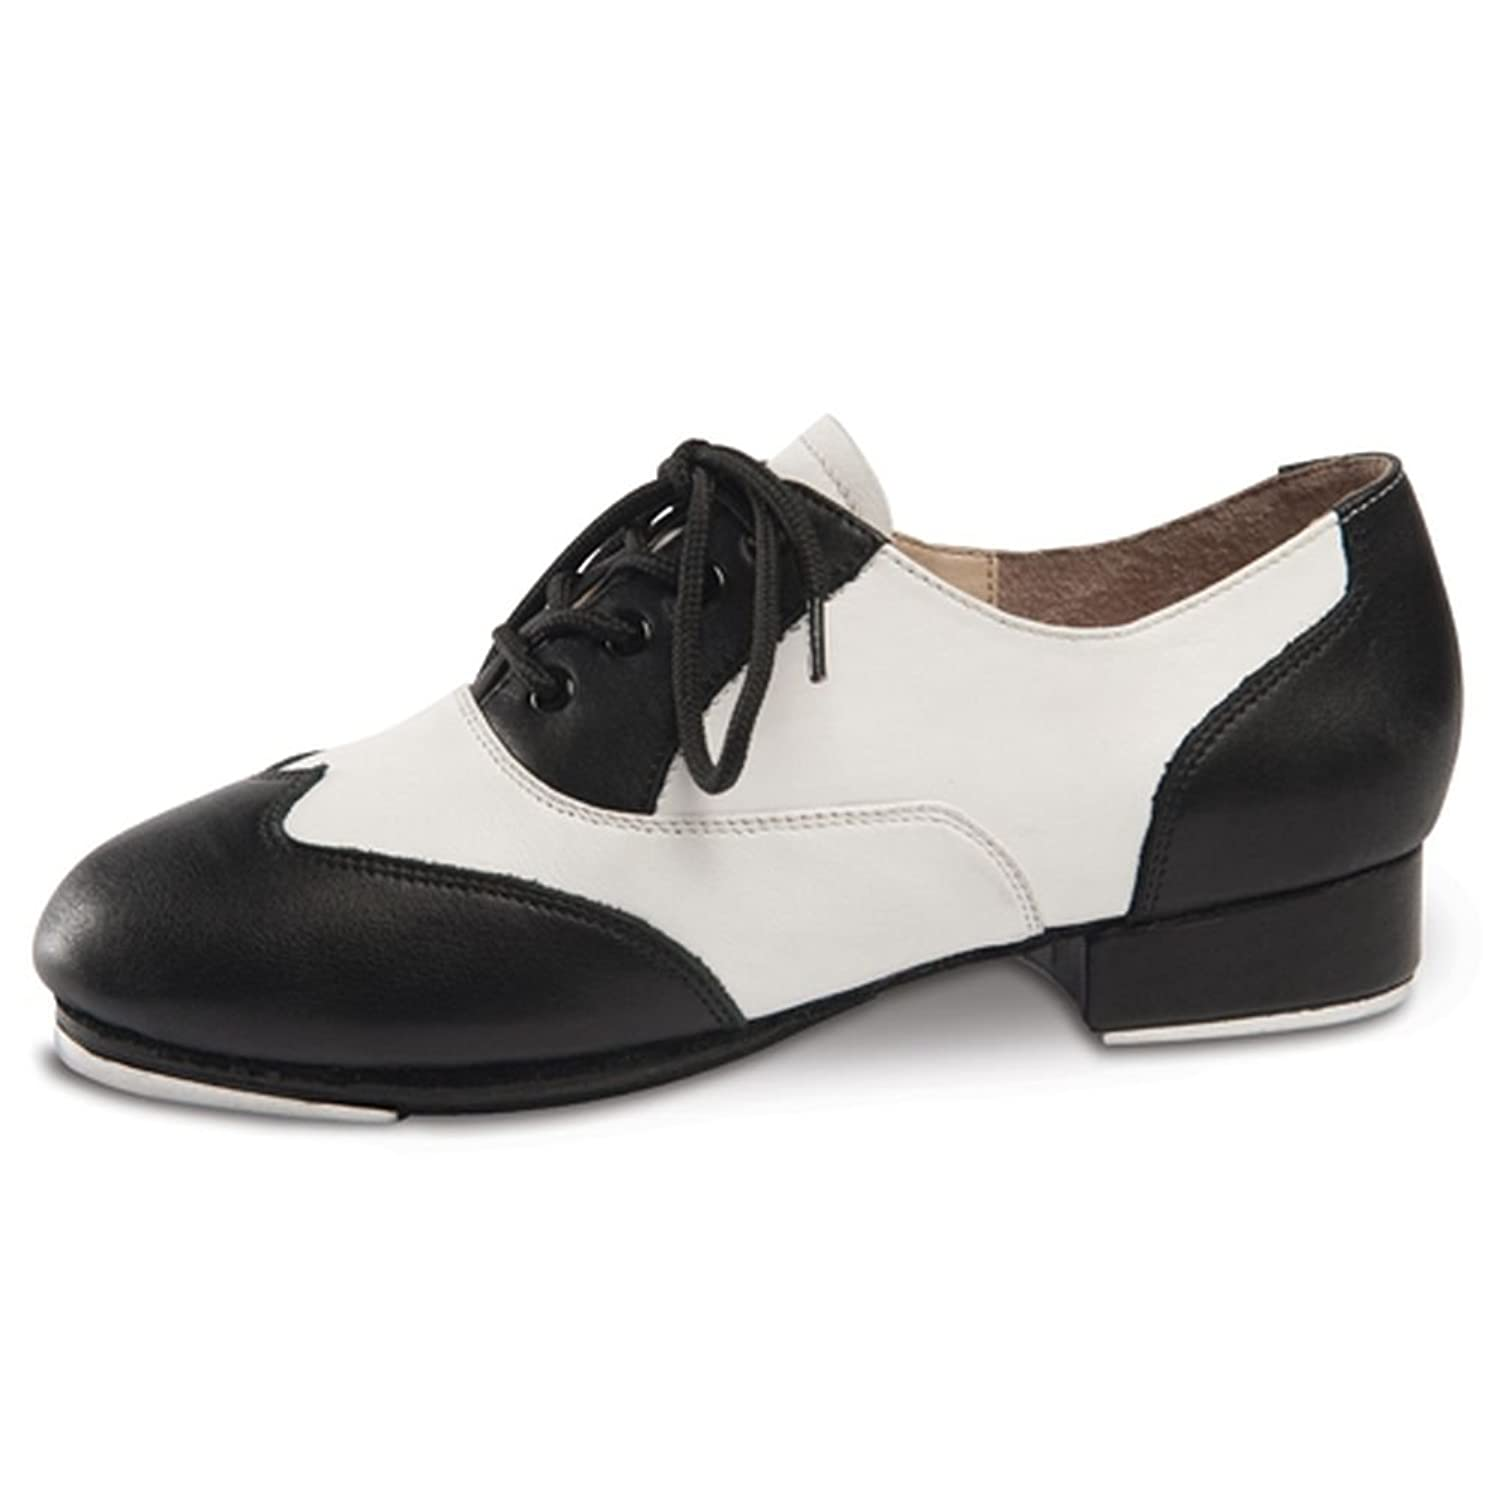 1950s Shoe Styles: Heels, Flats, Sandals, Saddles Shoes Danshuz Womens Black White Saddle Style Tap Dance Shoes Size 3-11 $119.95 AT vintagedancer.com